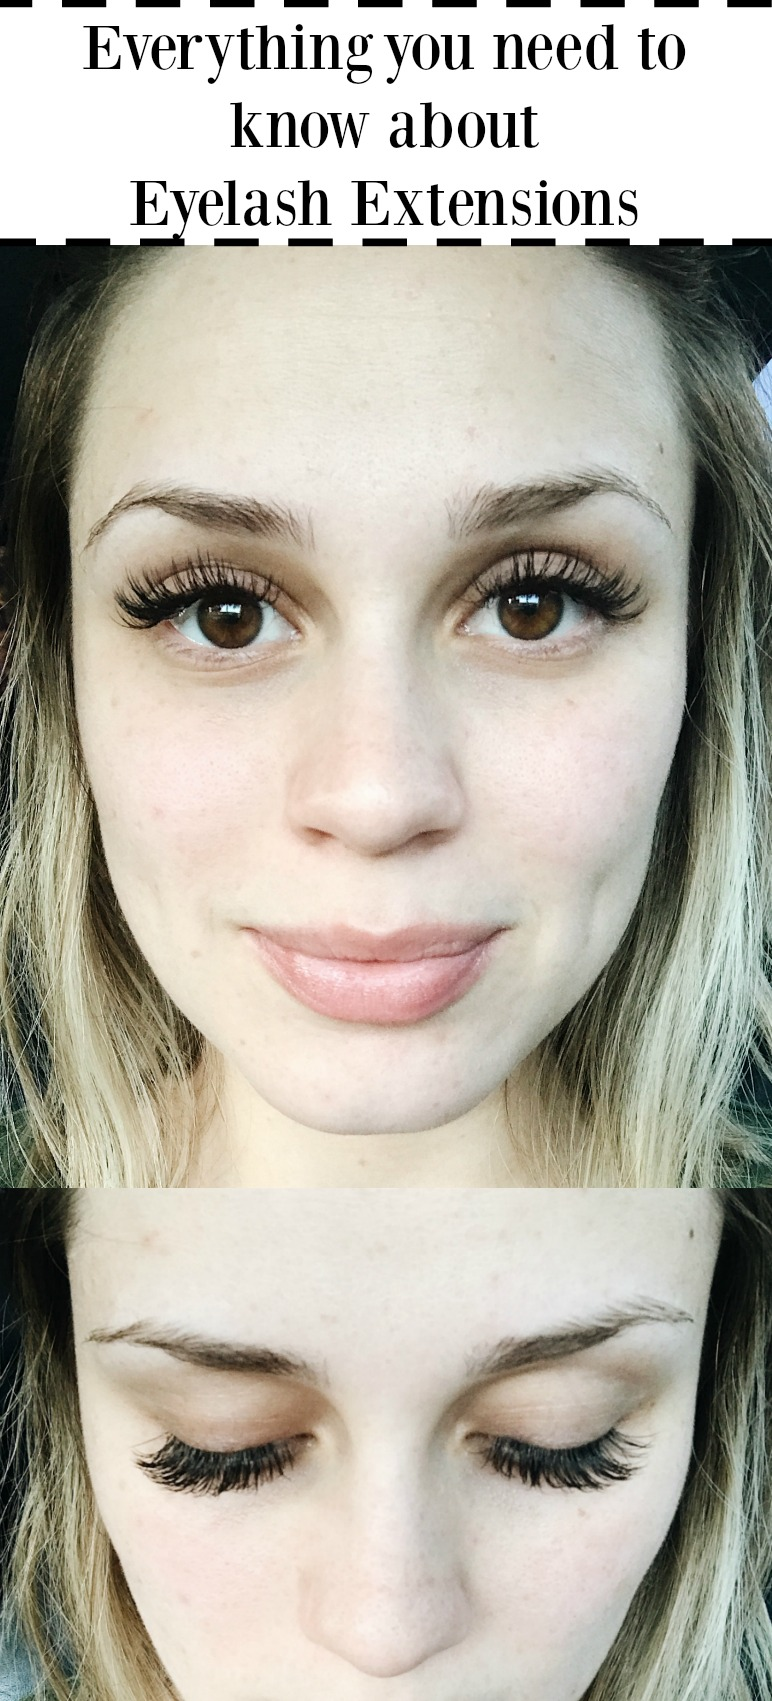 Everything you need to know about eyelash extensions - The good, the bad, and the ugly! | Lash extensions | Uptown with Elly Brown